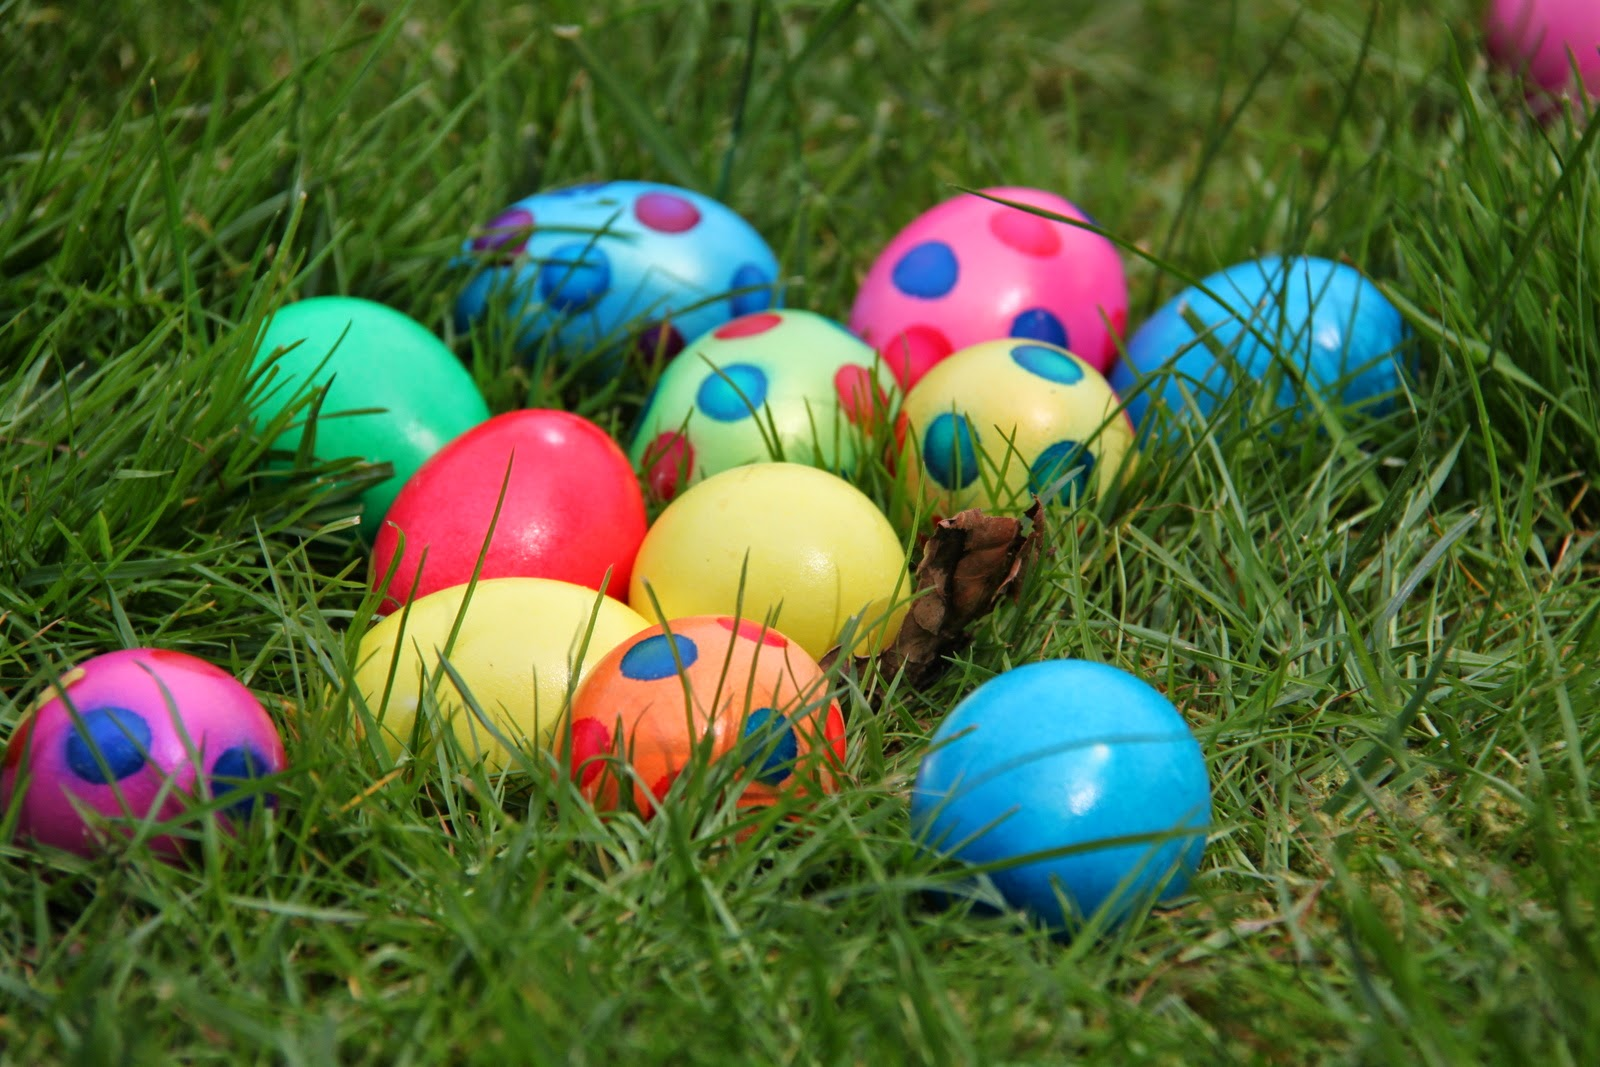 http://www.christinalake.ca/wp1/index.php/calendar/easter-egg-hunt/?instance_id=